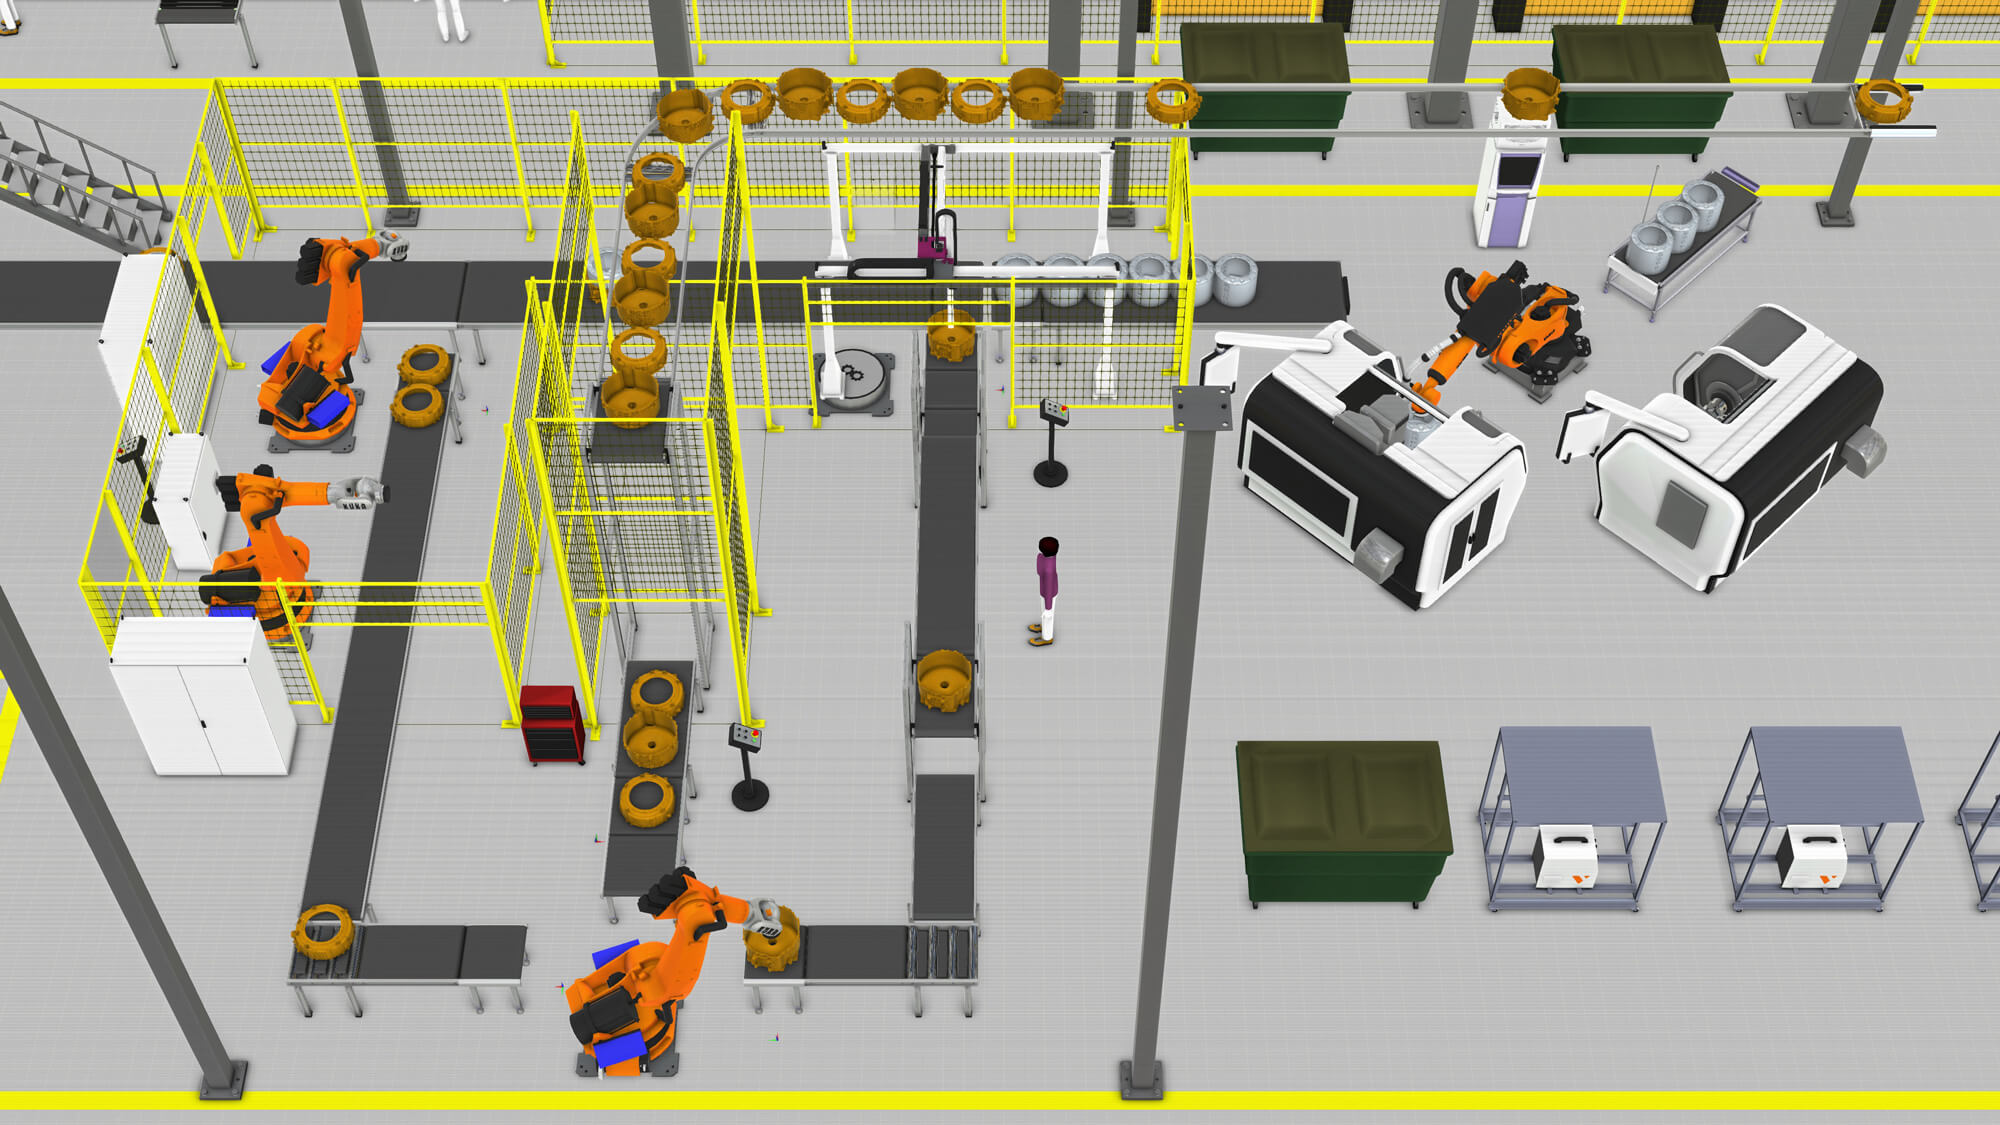 Simulation of a Midea tub assembly line